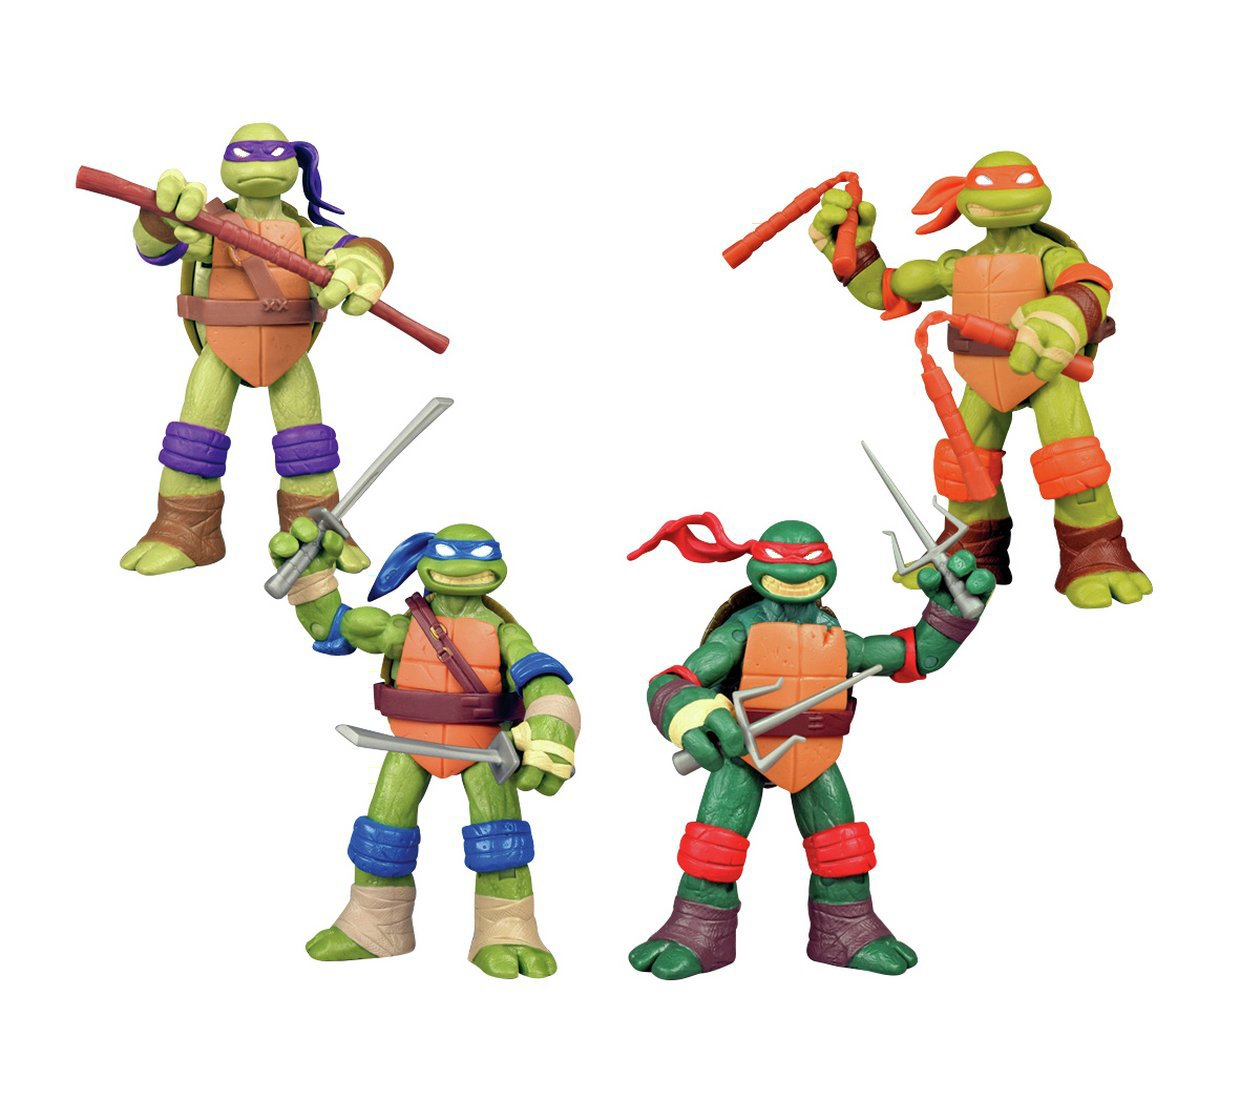 TMNT 4 Character Pack - Leonardo, Donatello, Michelangelo y Rafael Teenage Mutant Ninja Turtles